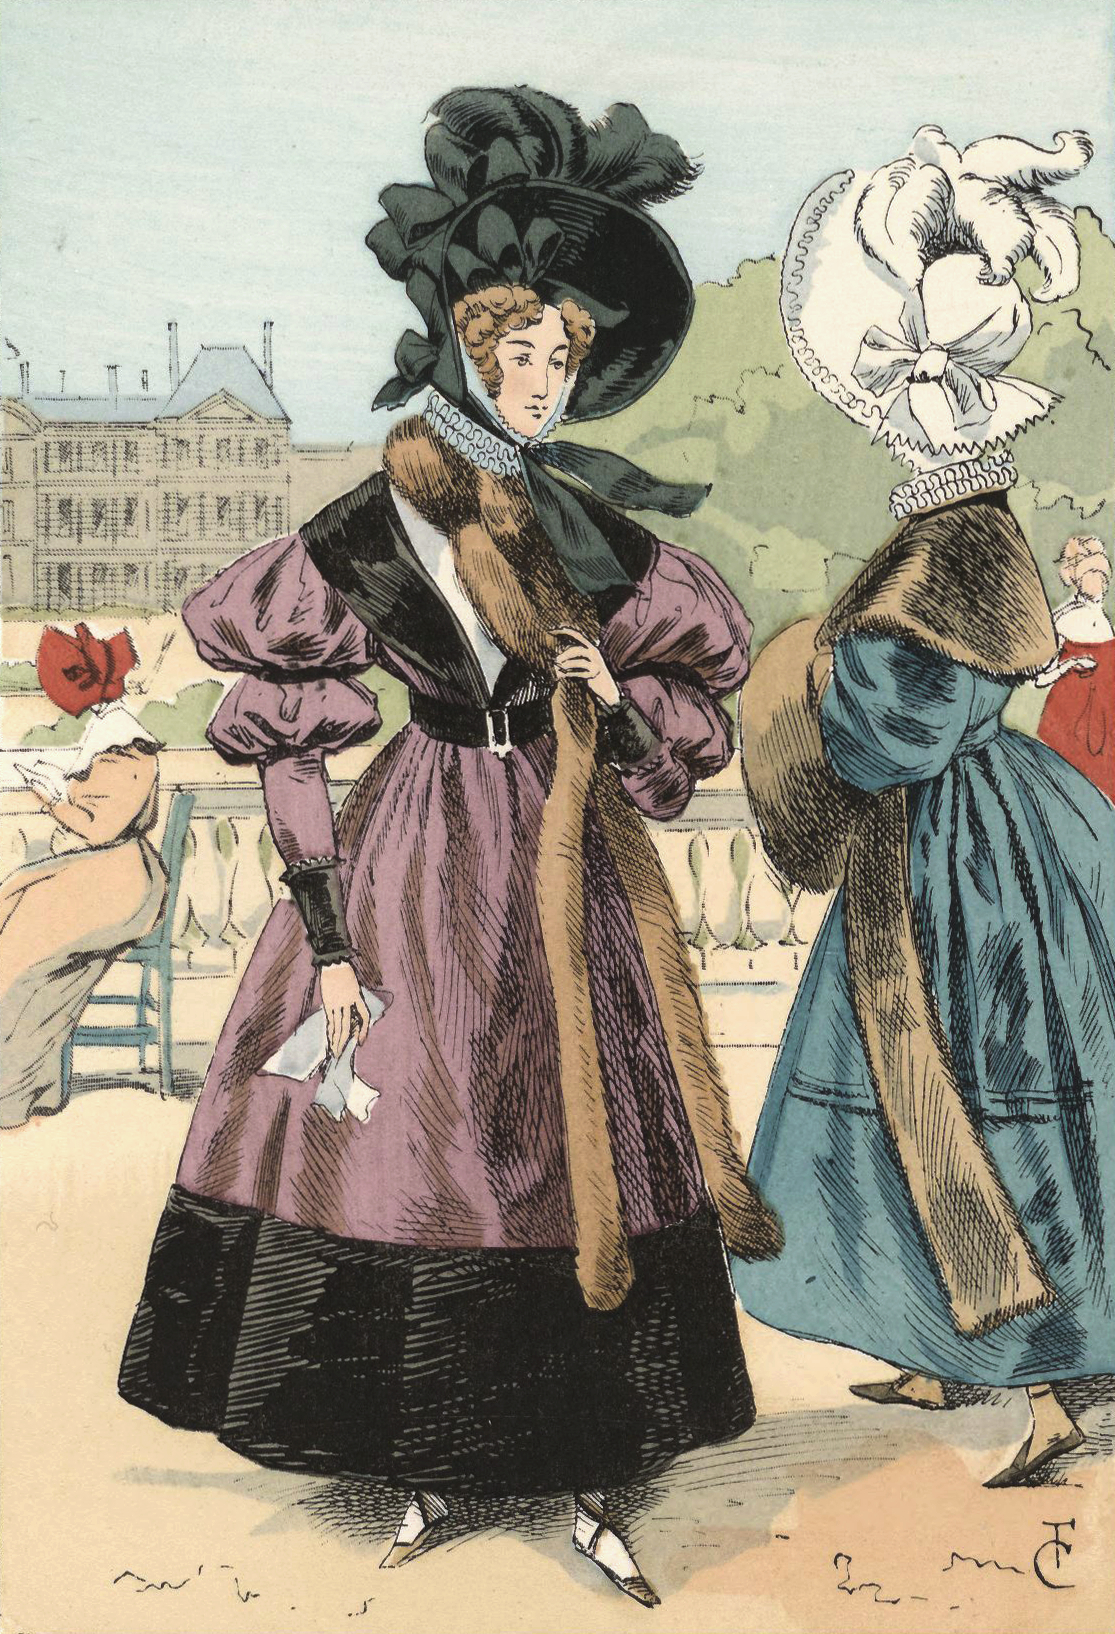 File:A Winter stroll in the Luxembourg gardens, 1830.jpg